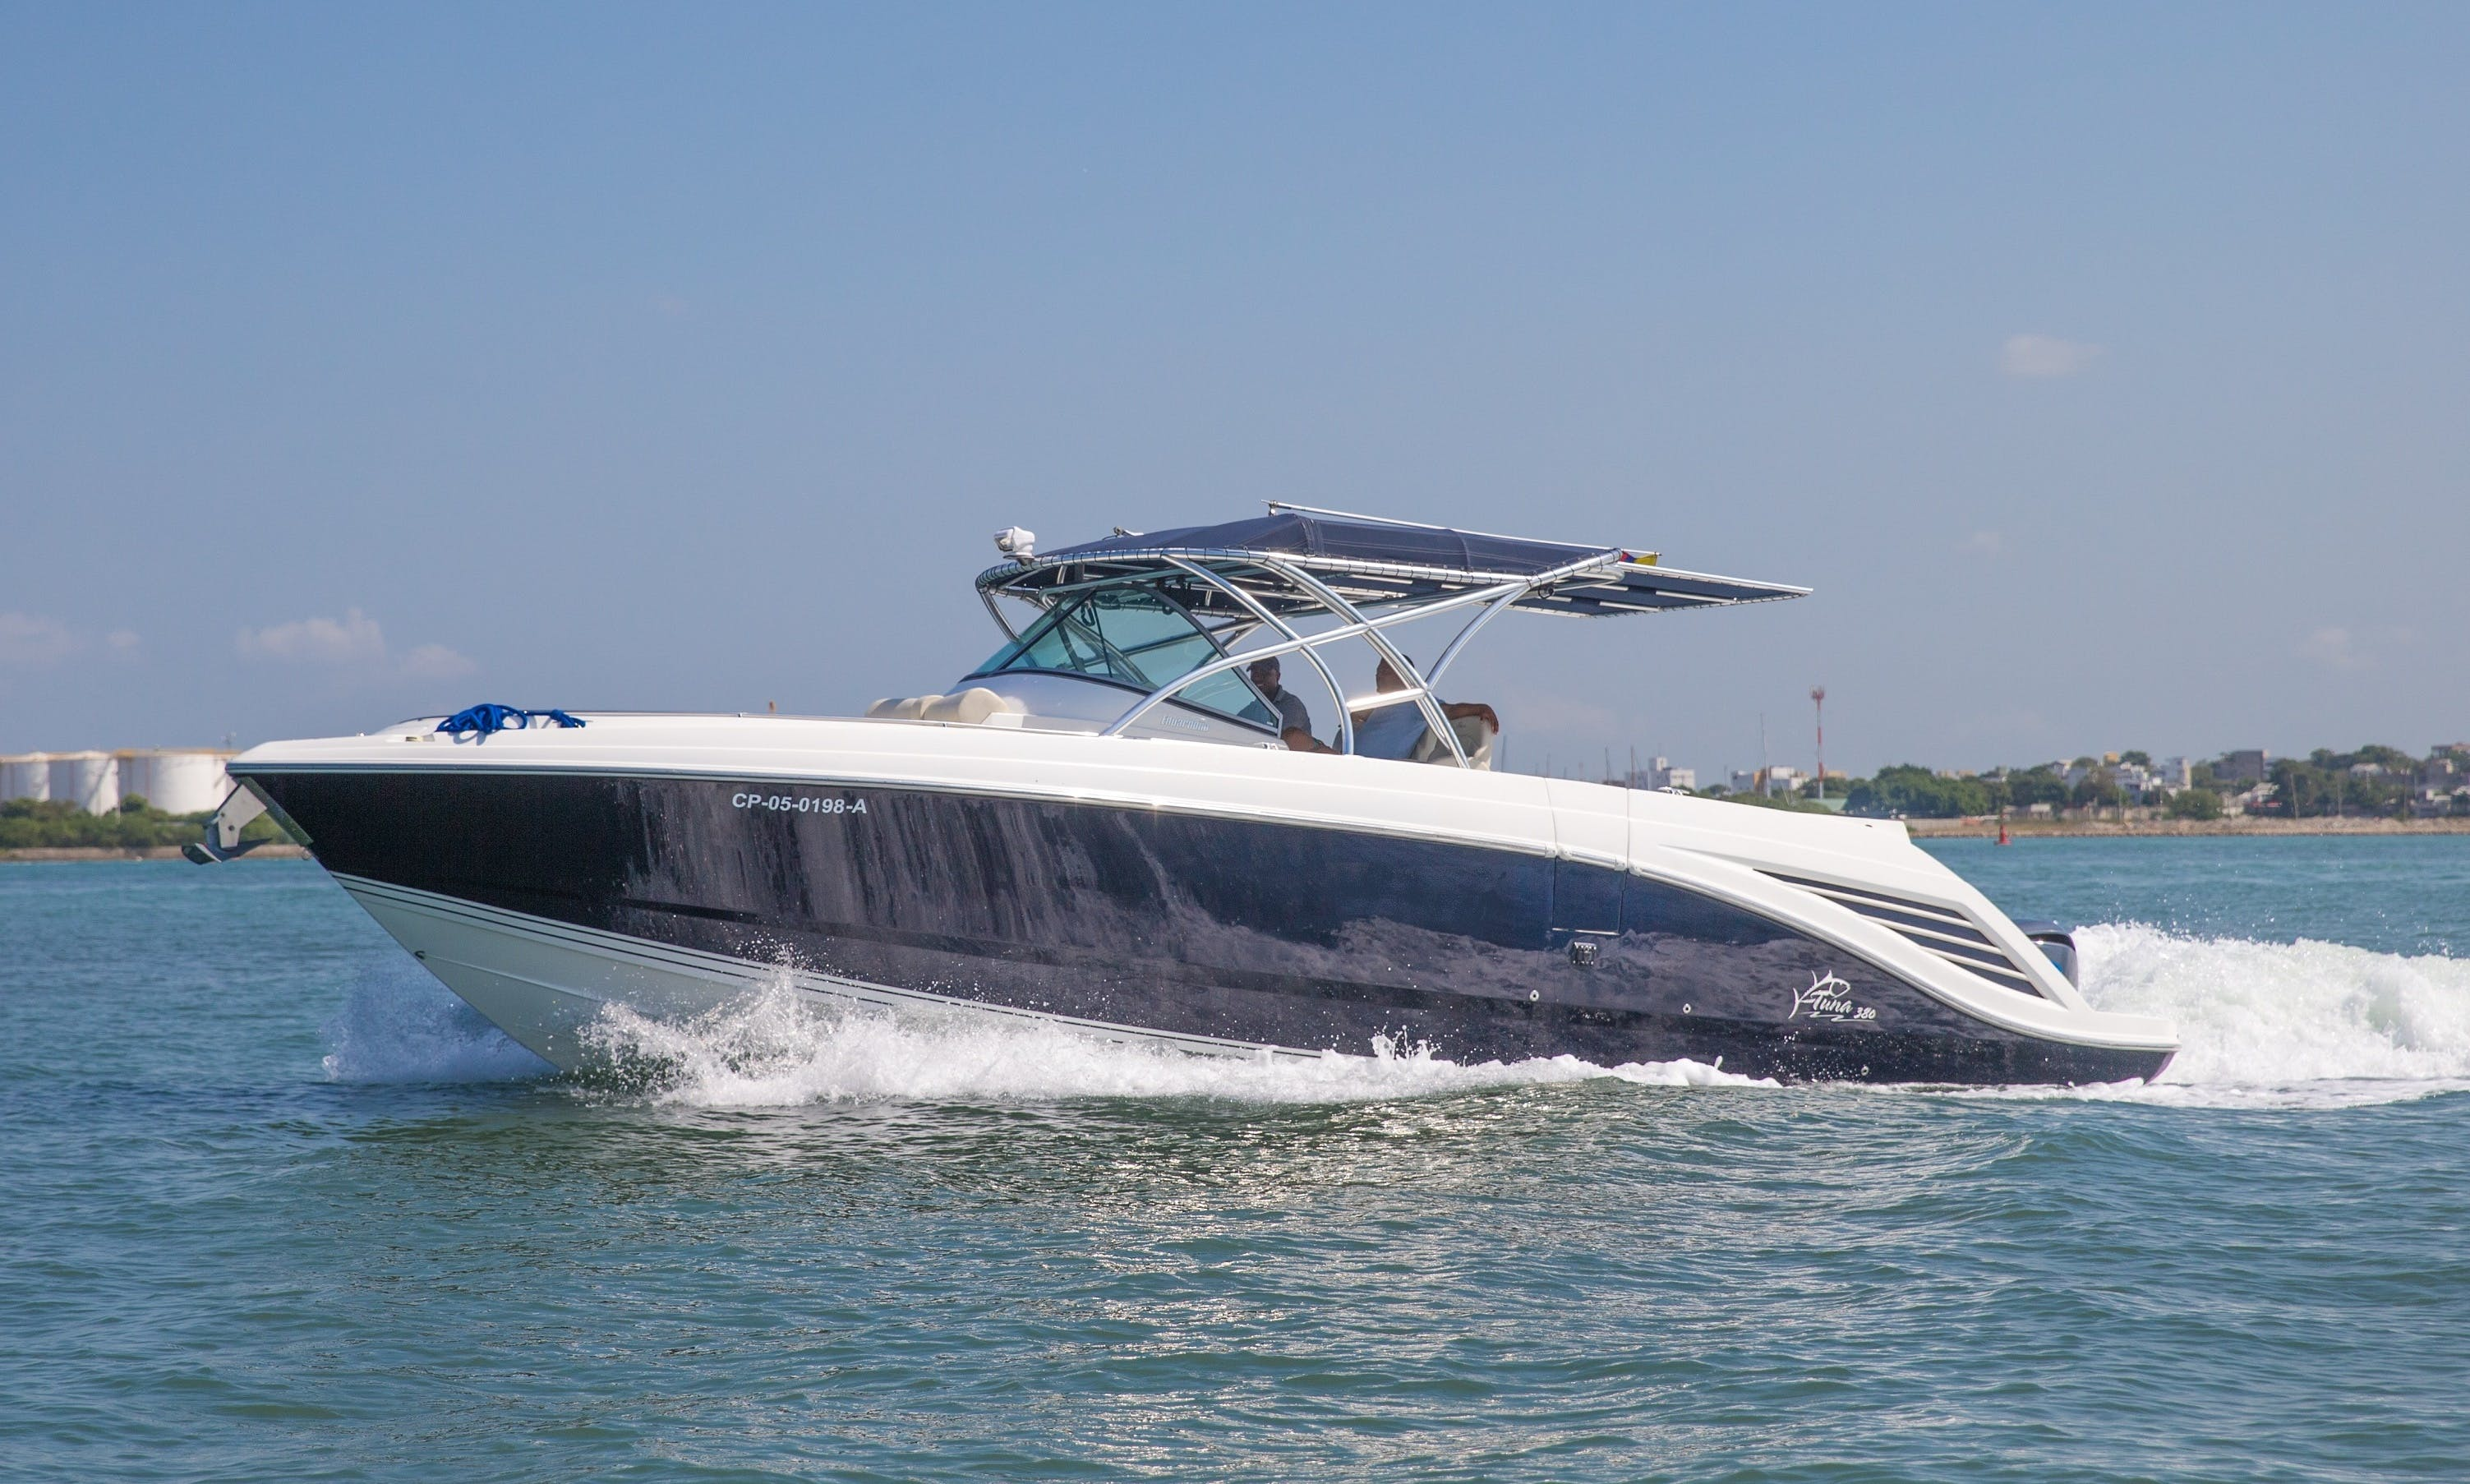 Speed Yacht Tuna 38ft - Island hopping in style